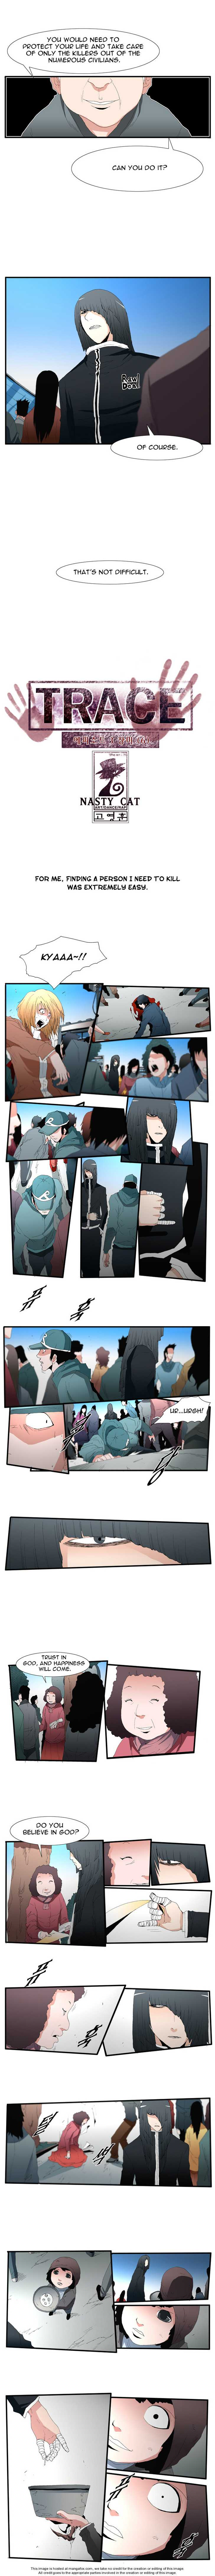 Trace 6 Page 1